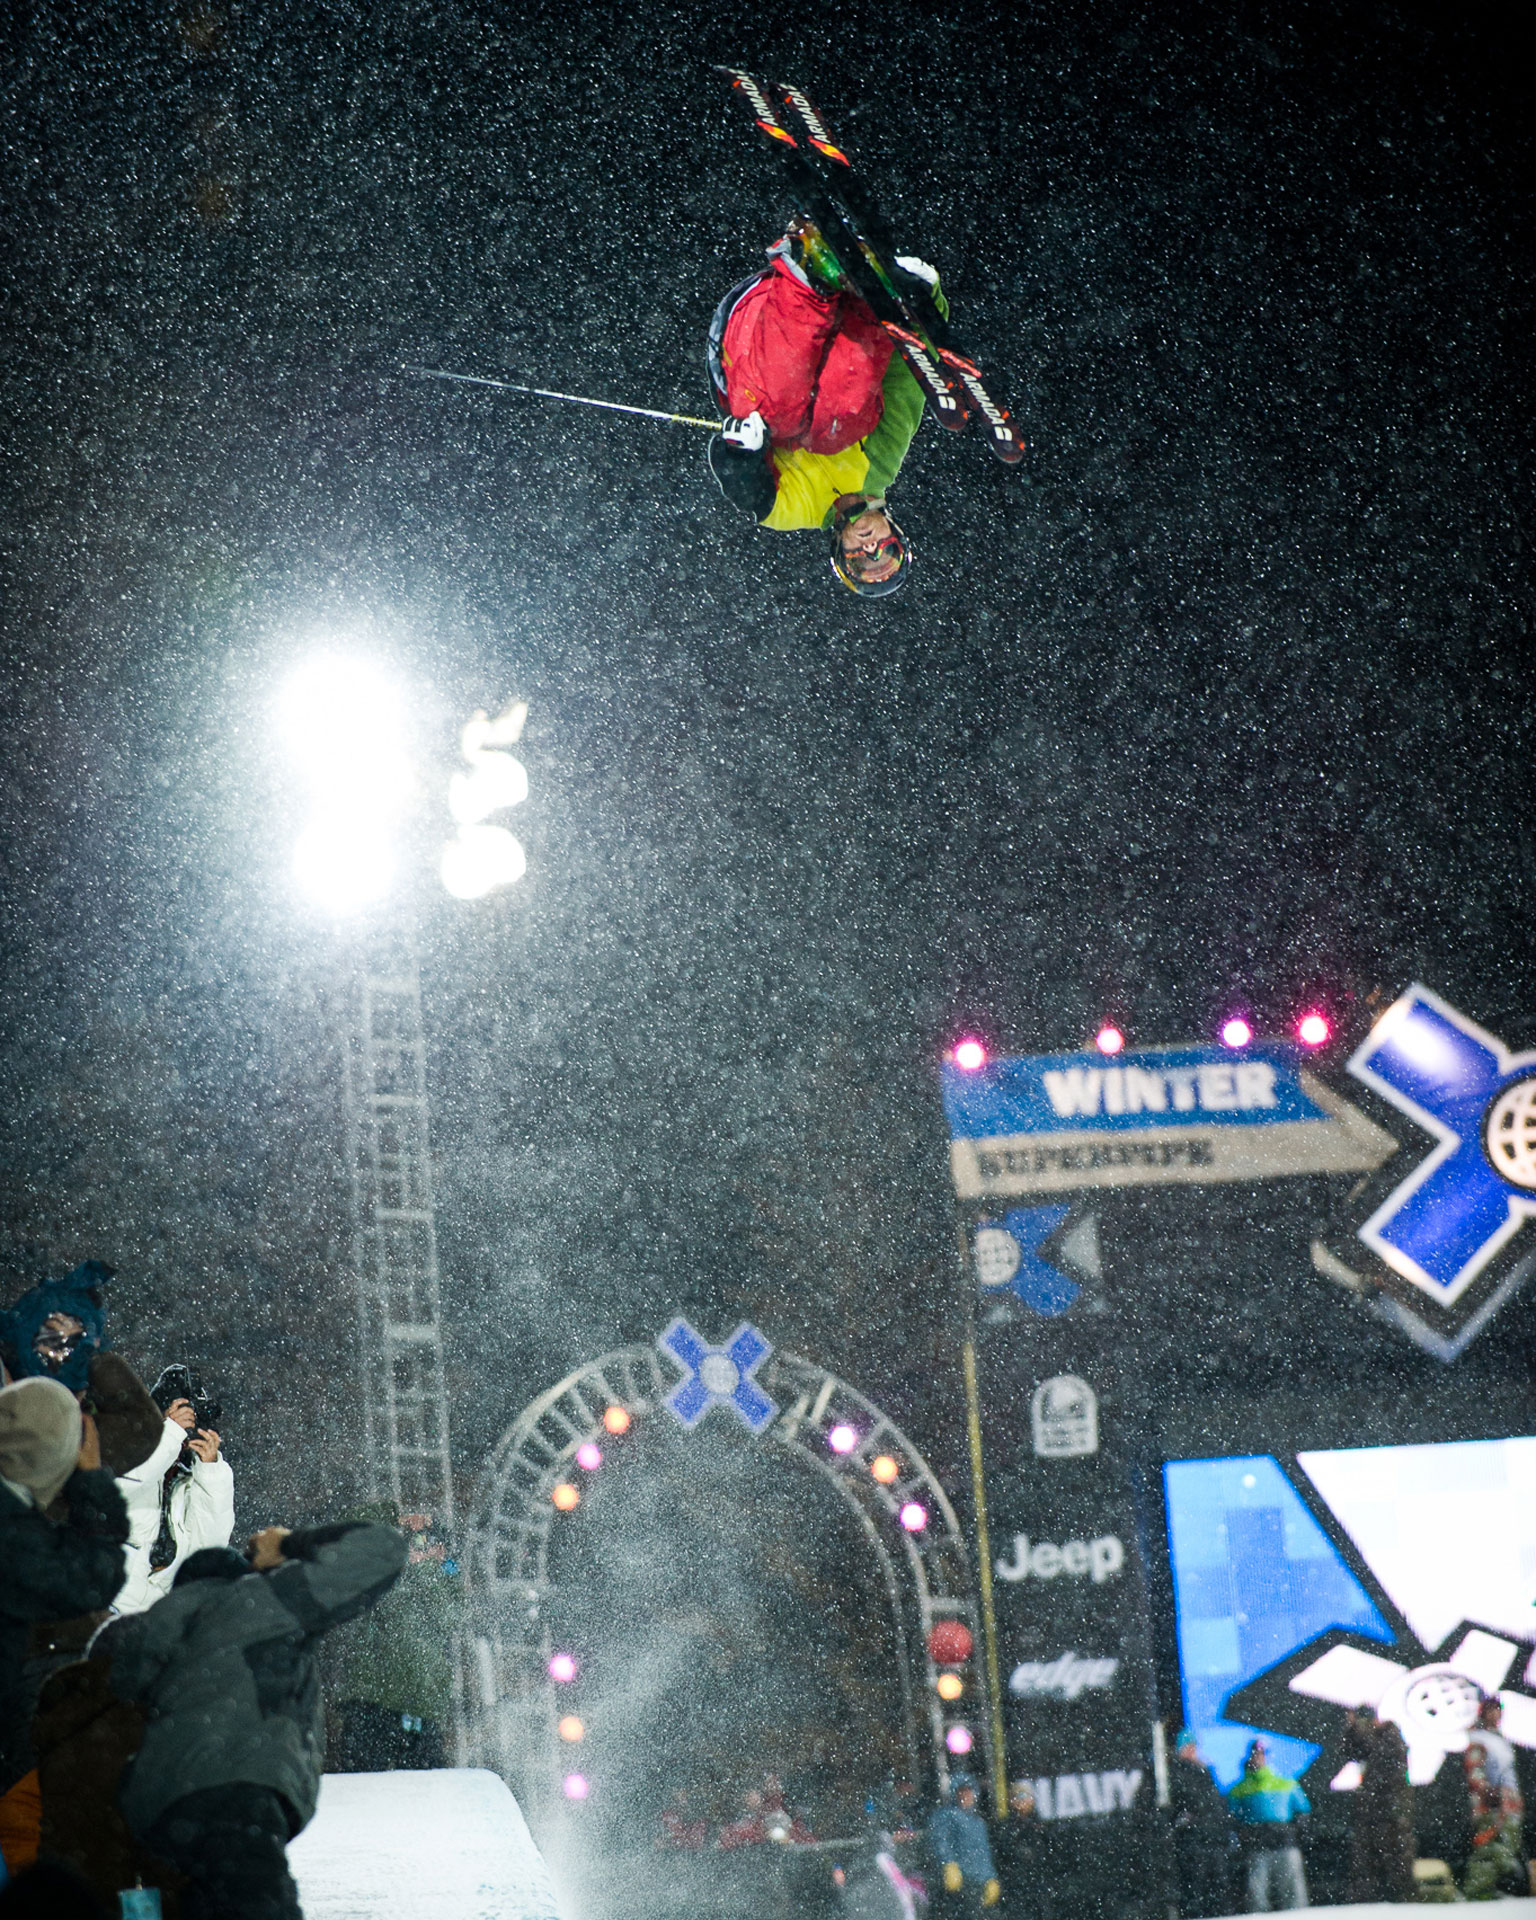 Winter X Games, 2009